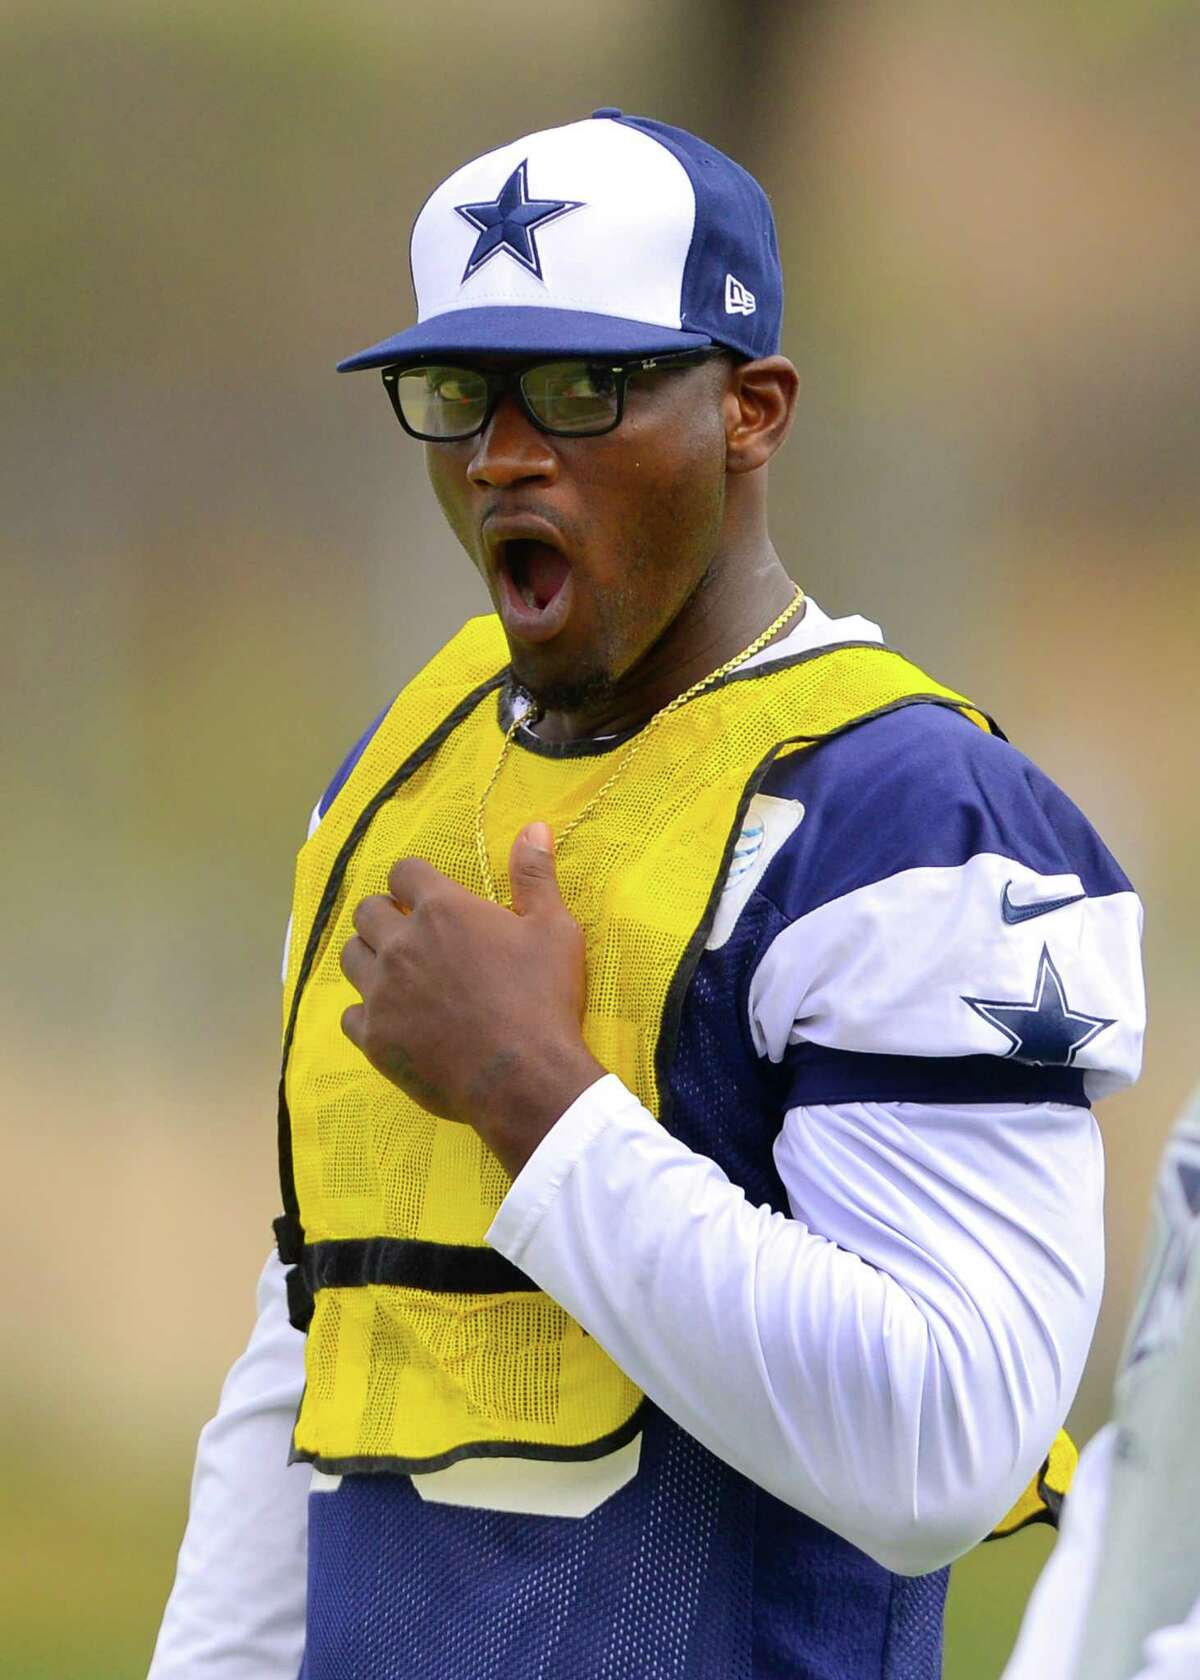 Dallas Cowboys linebacker Rolando McClain makes his first day of practice since his retirement during Dallas Cowboy's NFL training camp, Saturday, July 26, 2014, in Oxnard, Calif. (AP Photo/Gus Ruelas)